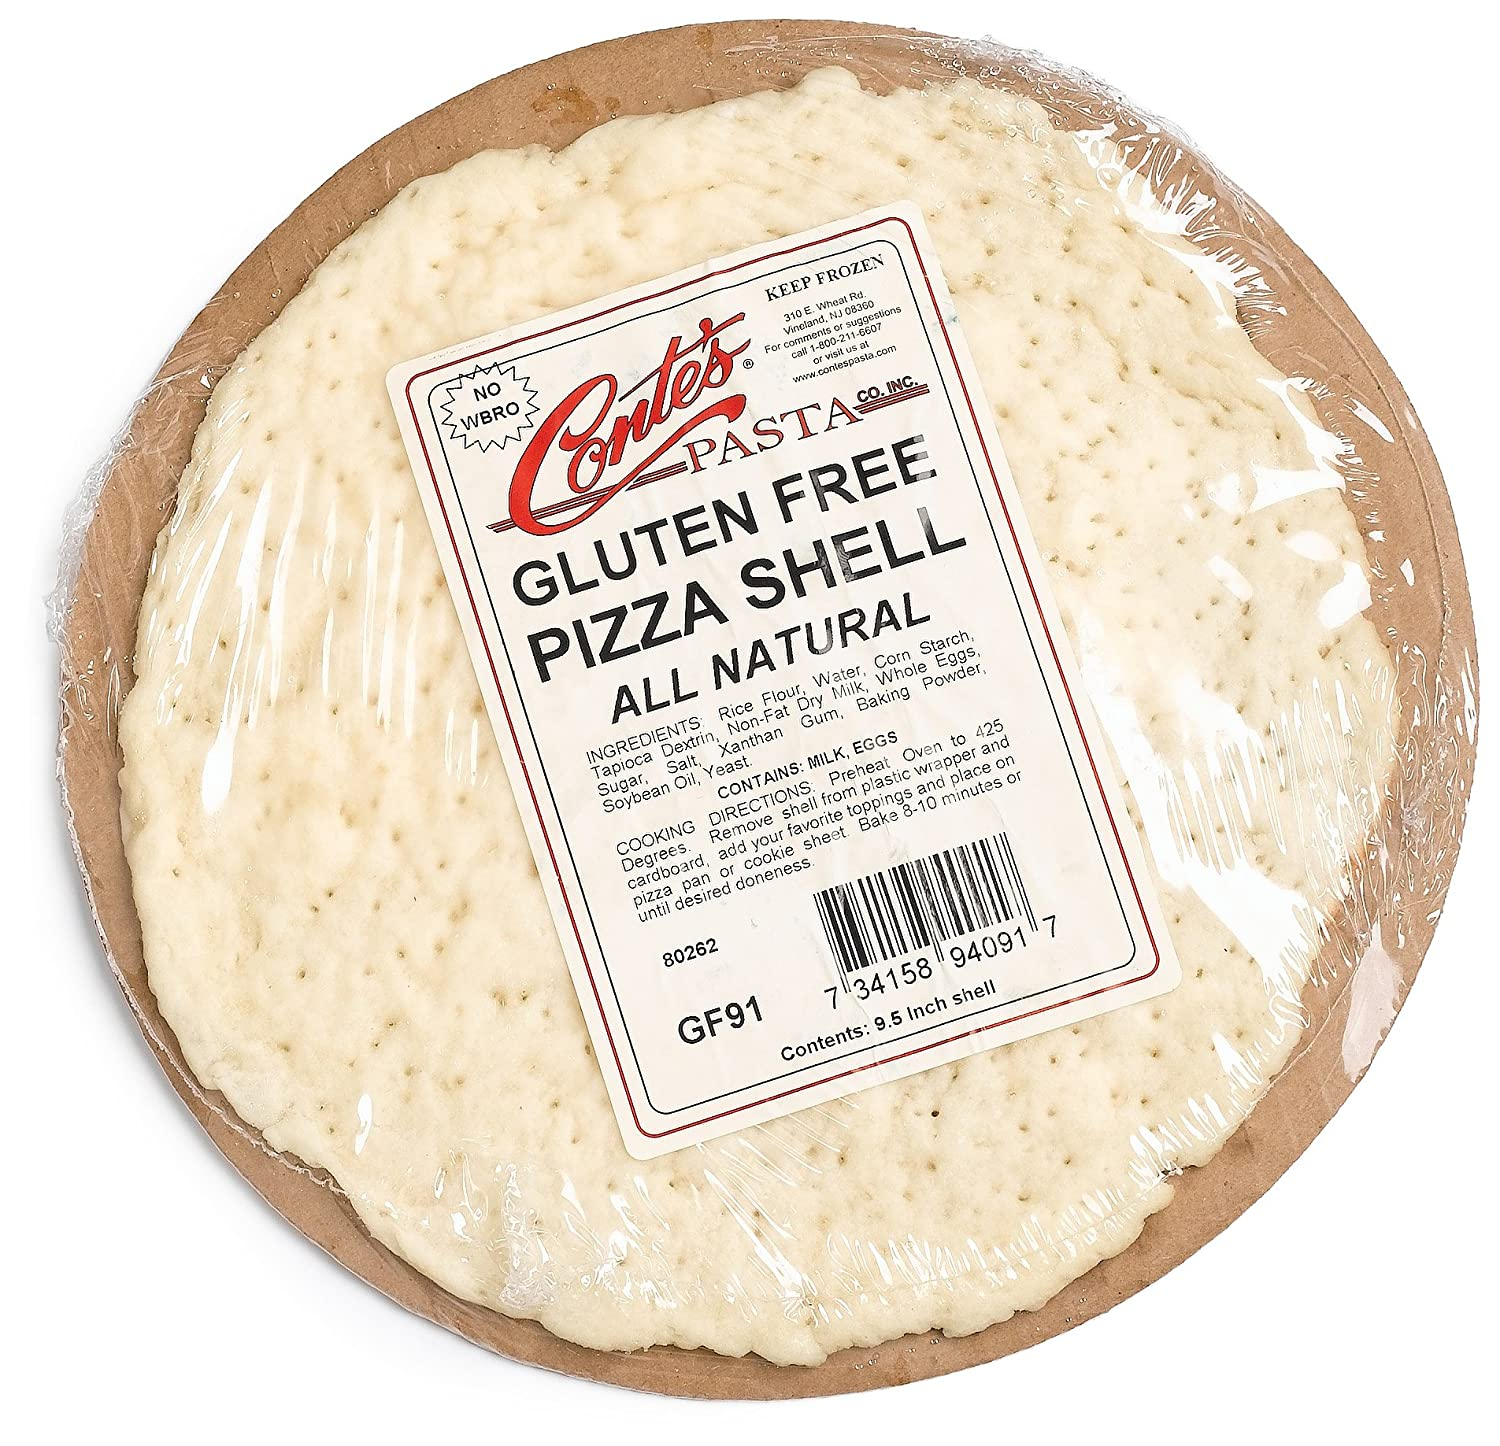 Conte S Gluten Free Prebaked Pizza Shell 8 Ounce Boxes Pack Of 5 Amazon Com Grocery Gourmet Food